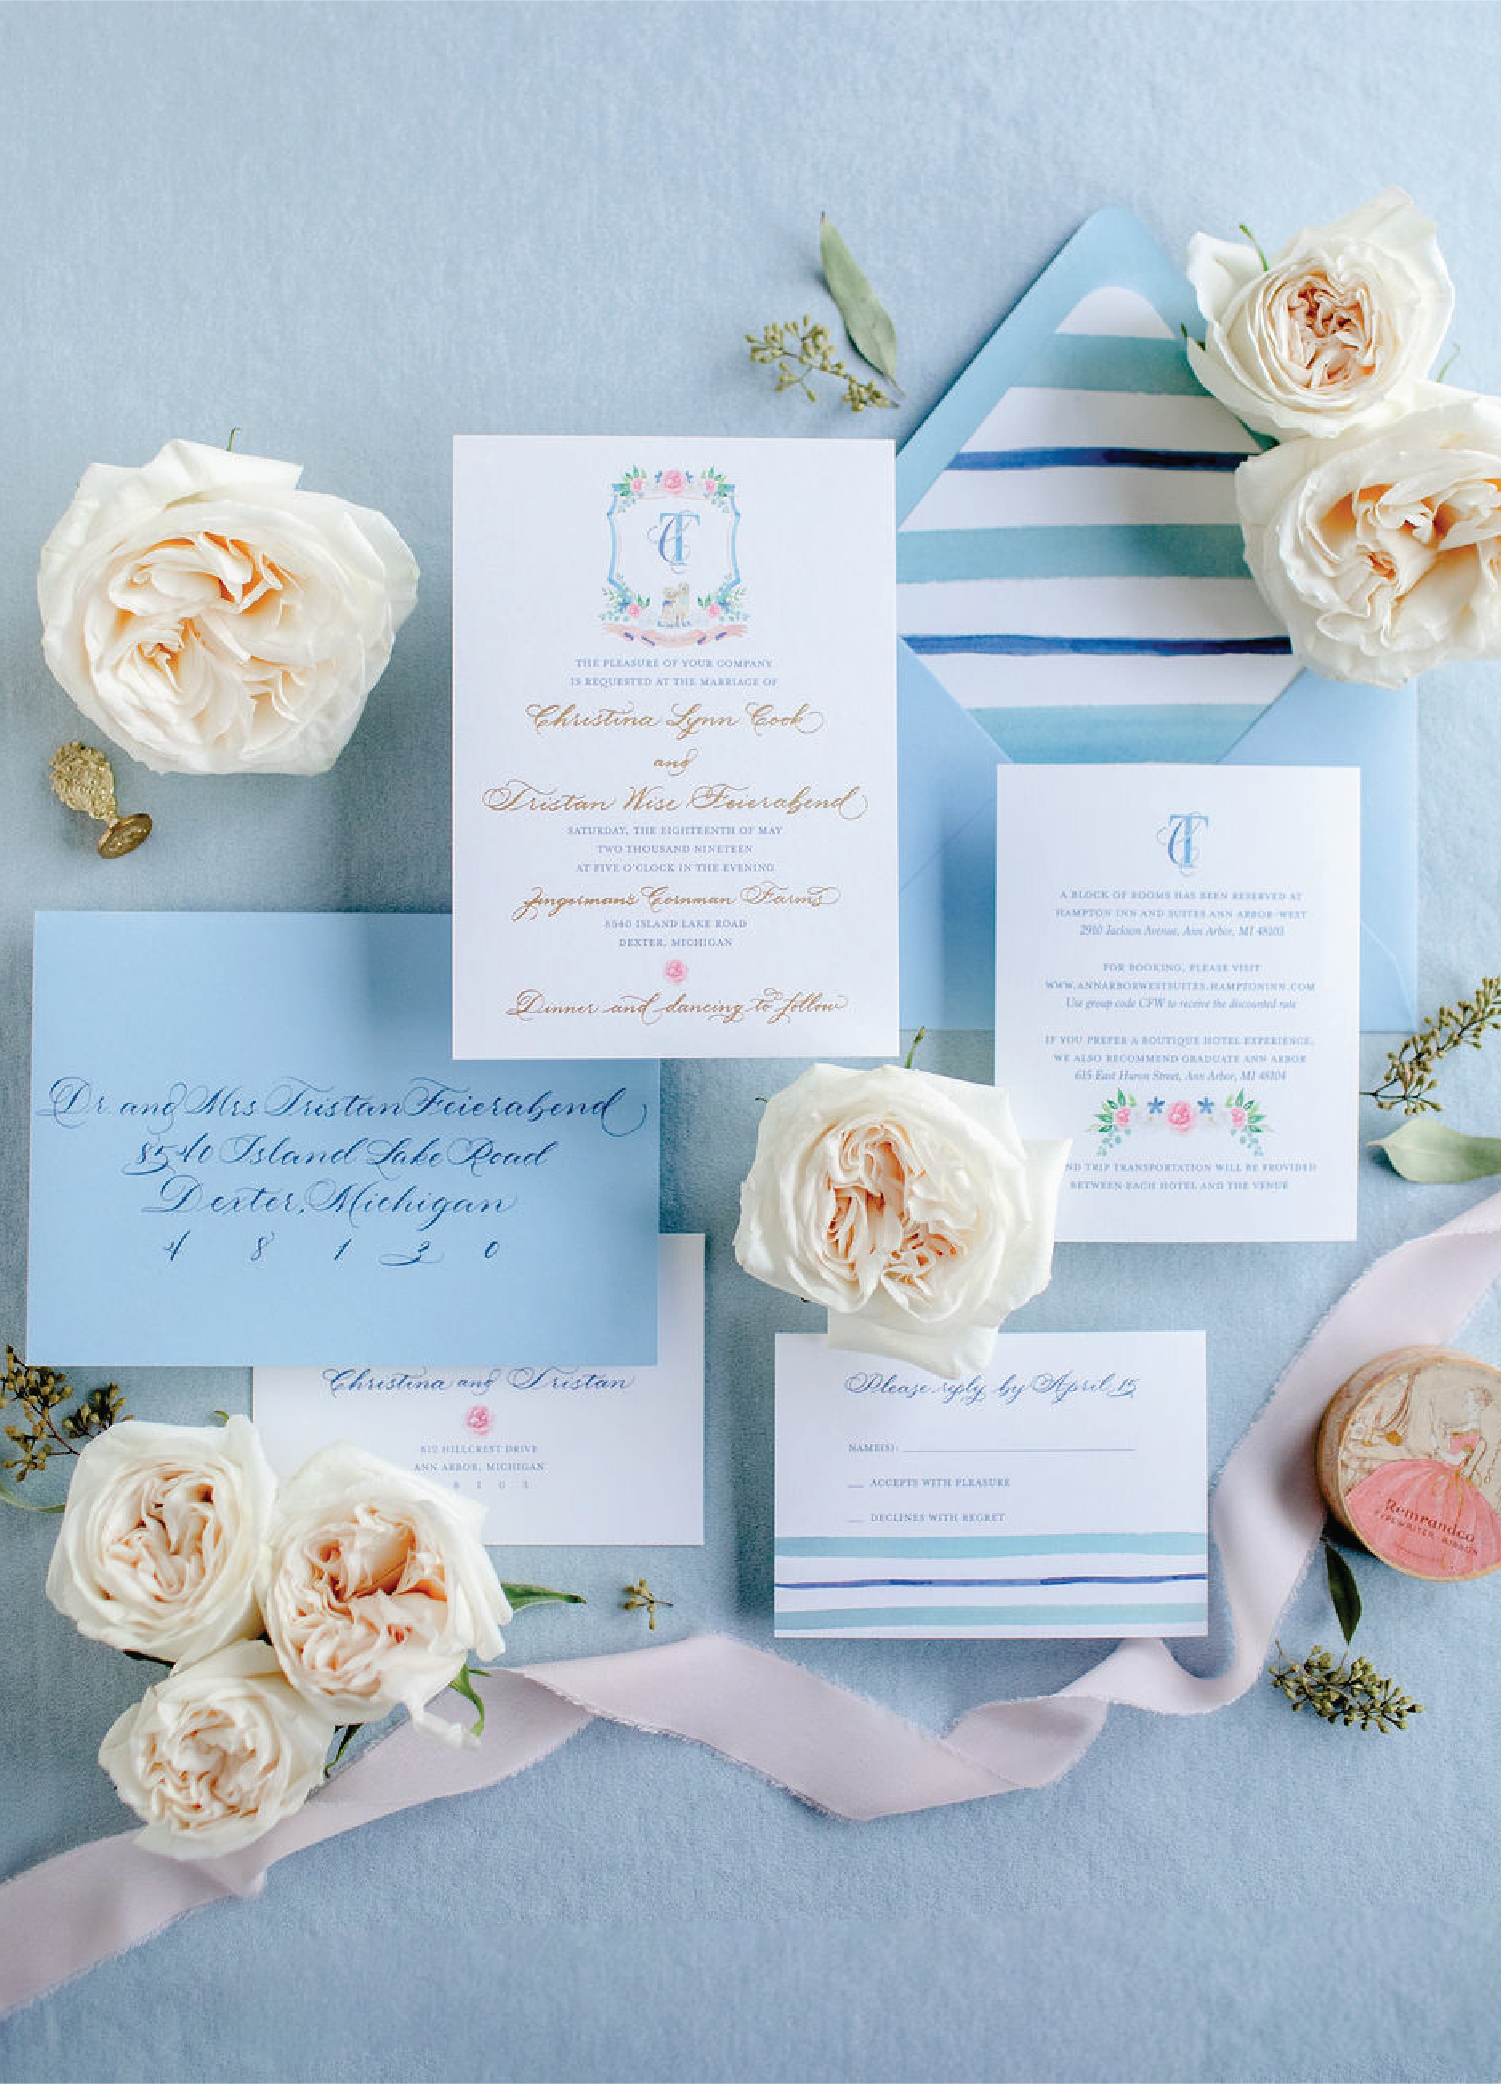 Blue and gold foil preppy wedding invitations with calligraphy and crest with dogs and flowers by Leah E. Moss Designs for Zingerman's Cornman Farms wedding